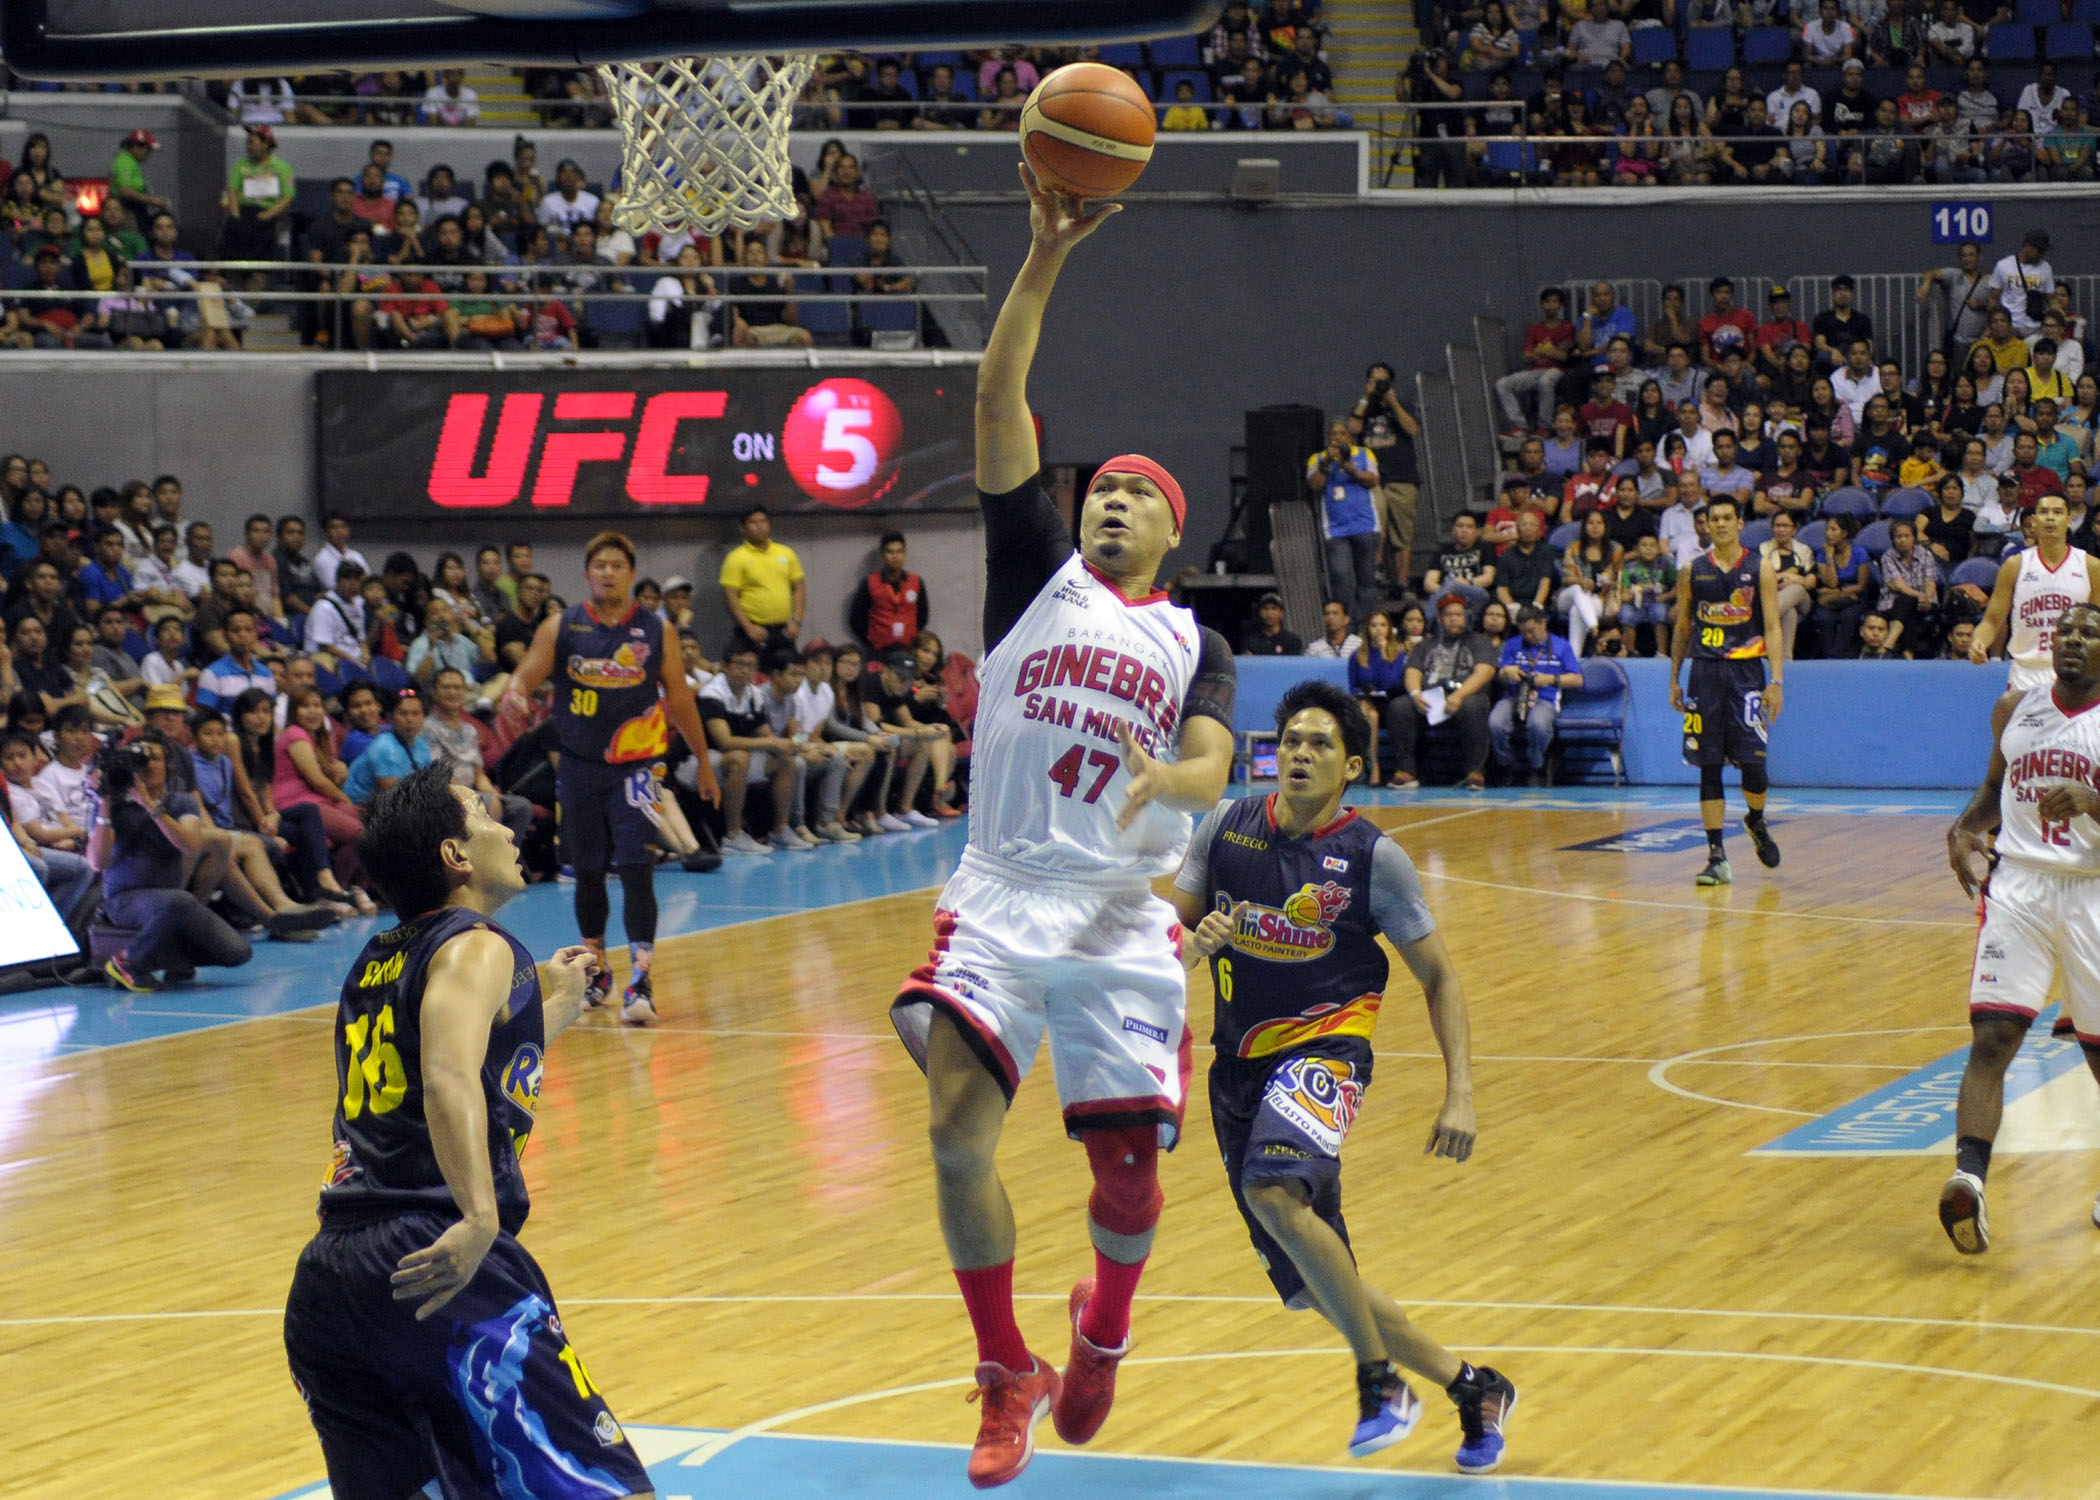 Nba Finals Game 5 Philippines | All Basketball Scores Info